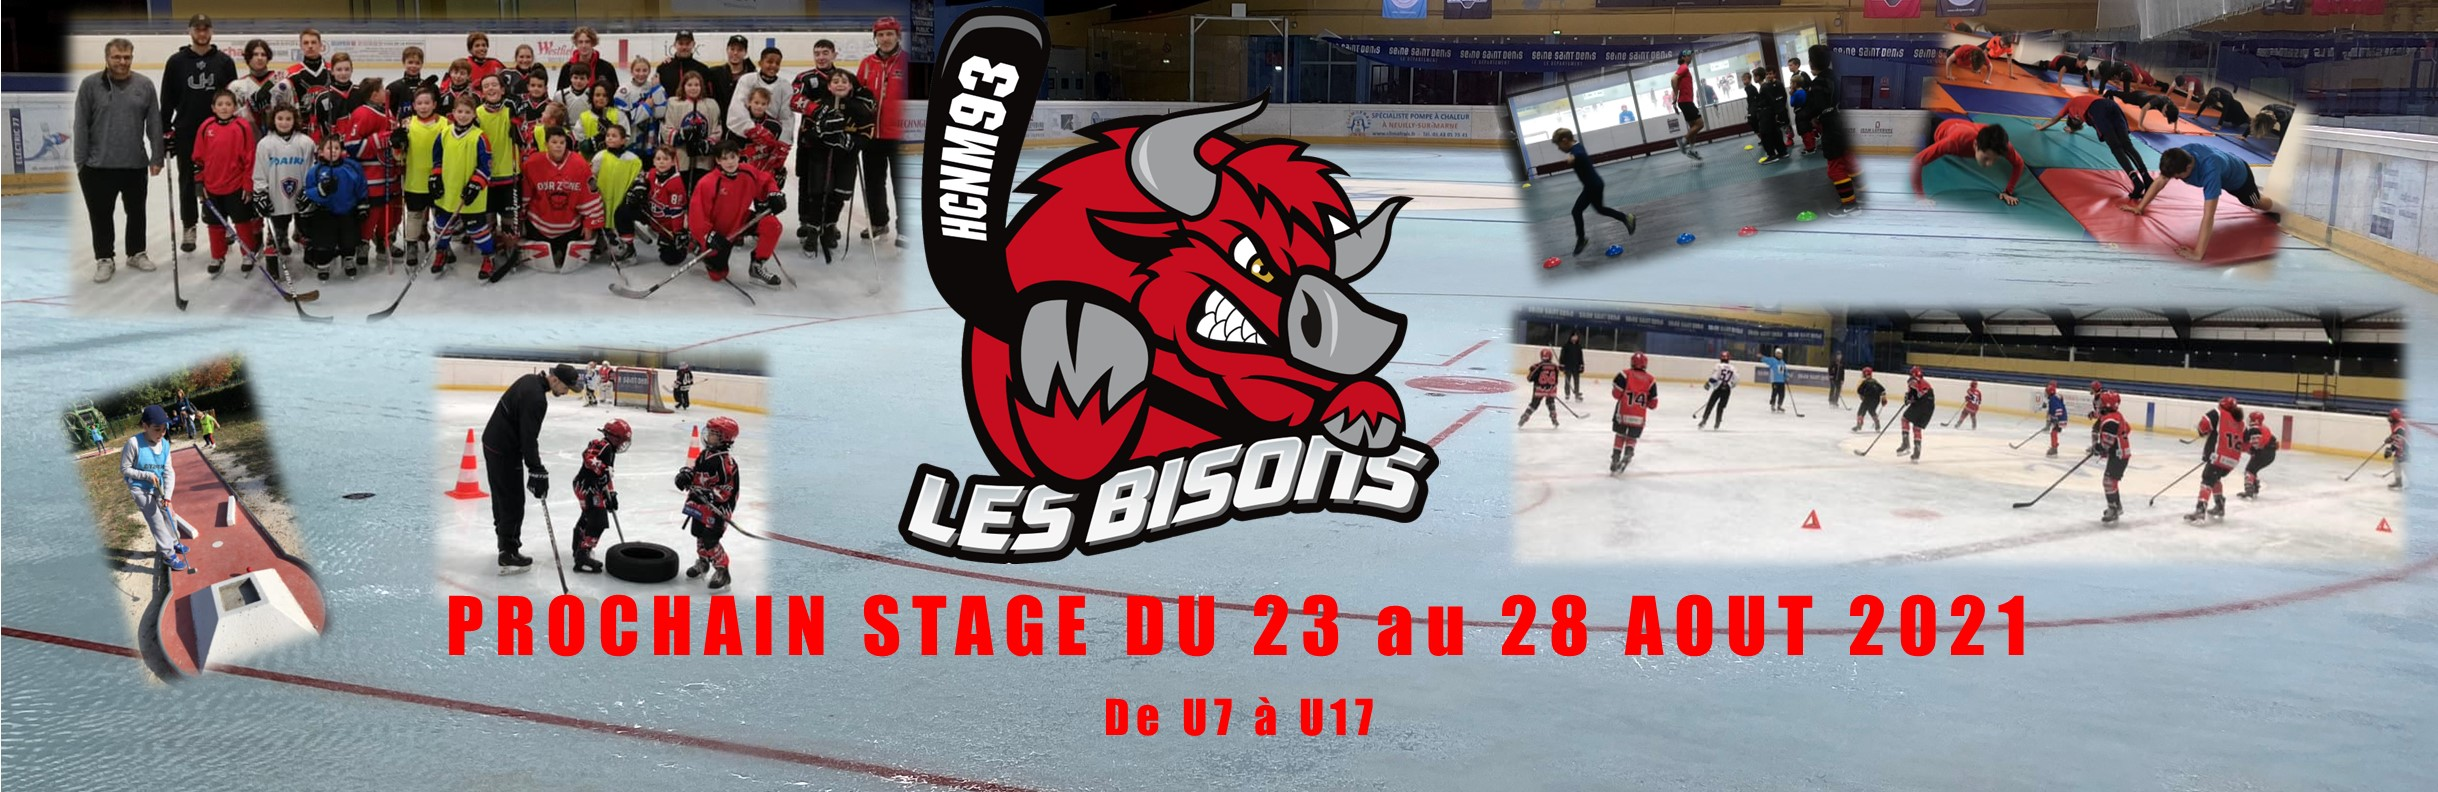 STAGE-banniere-aout-2021